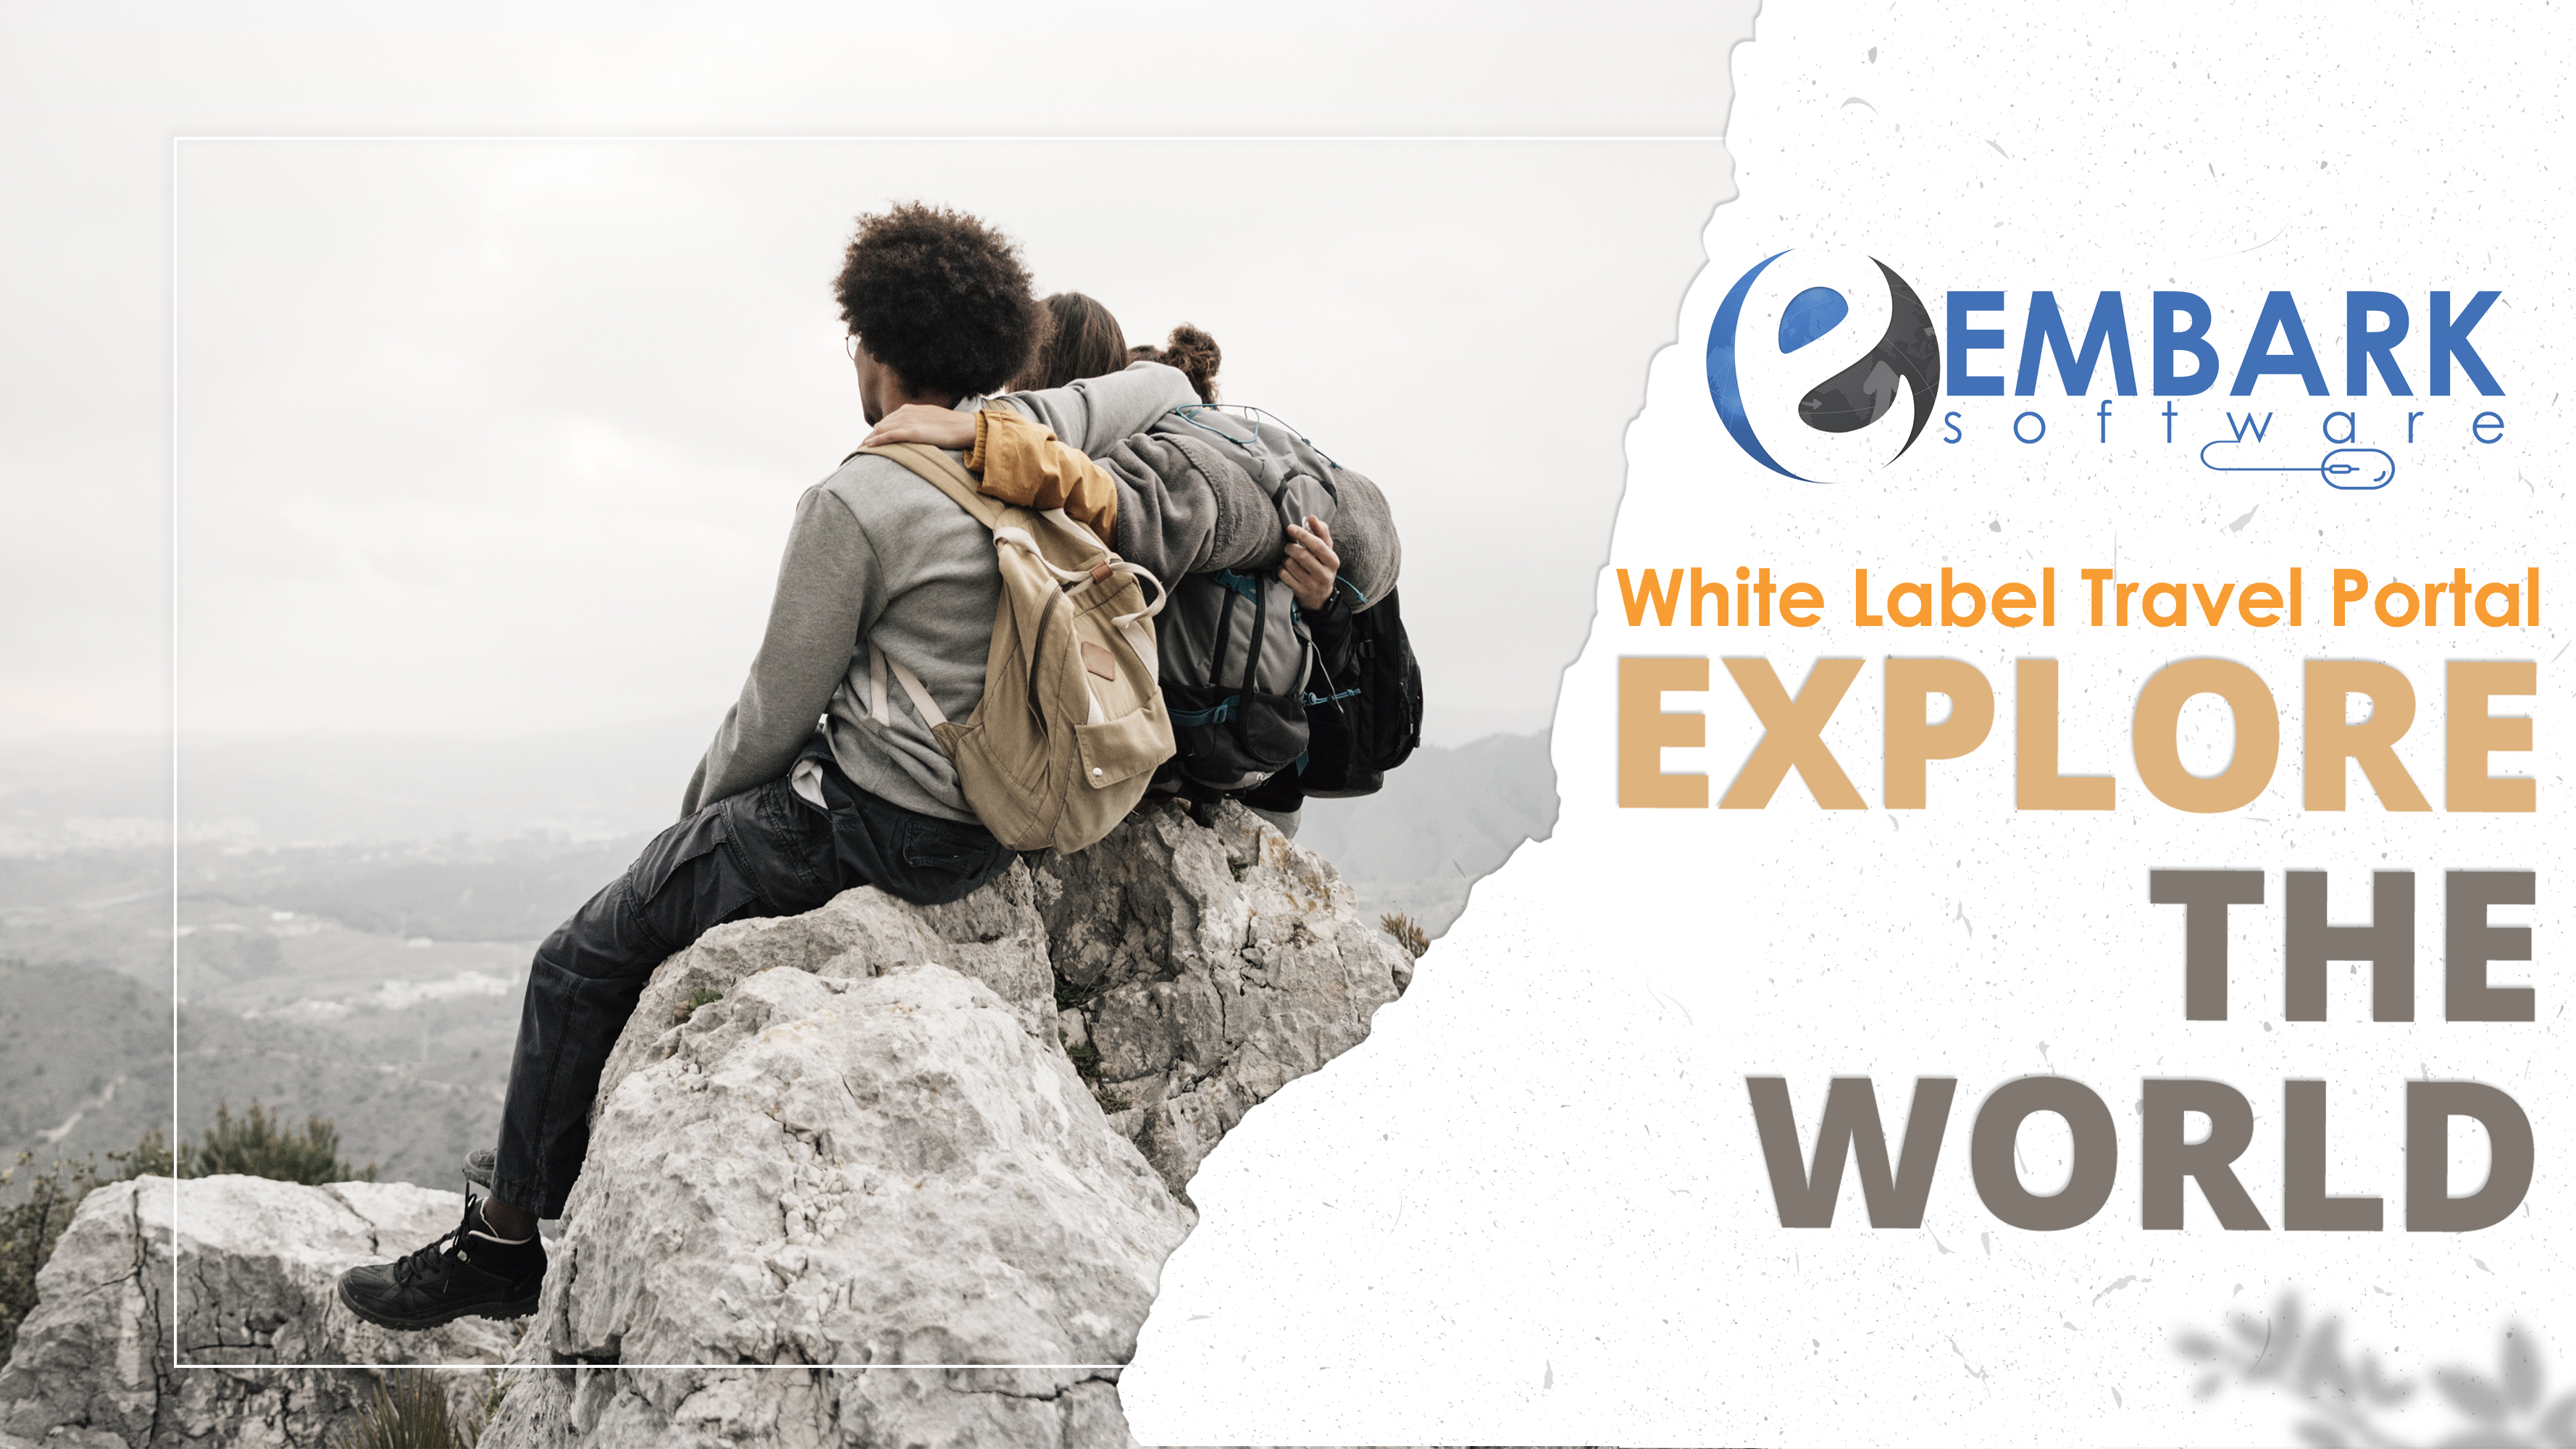 Why One Should Go for White Label Travel Portal?